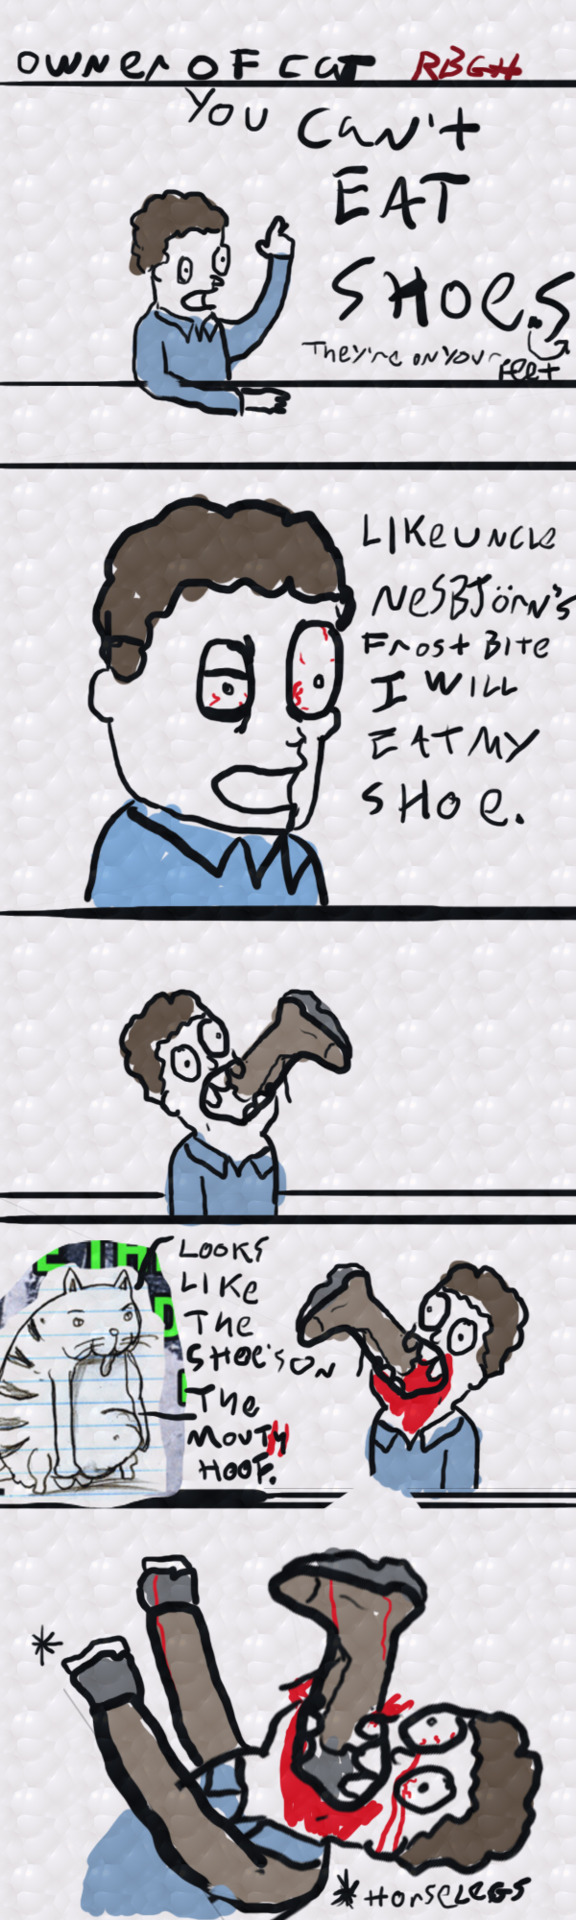 i foungd th comic .it was unner my beda nd smells like roms.